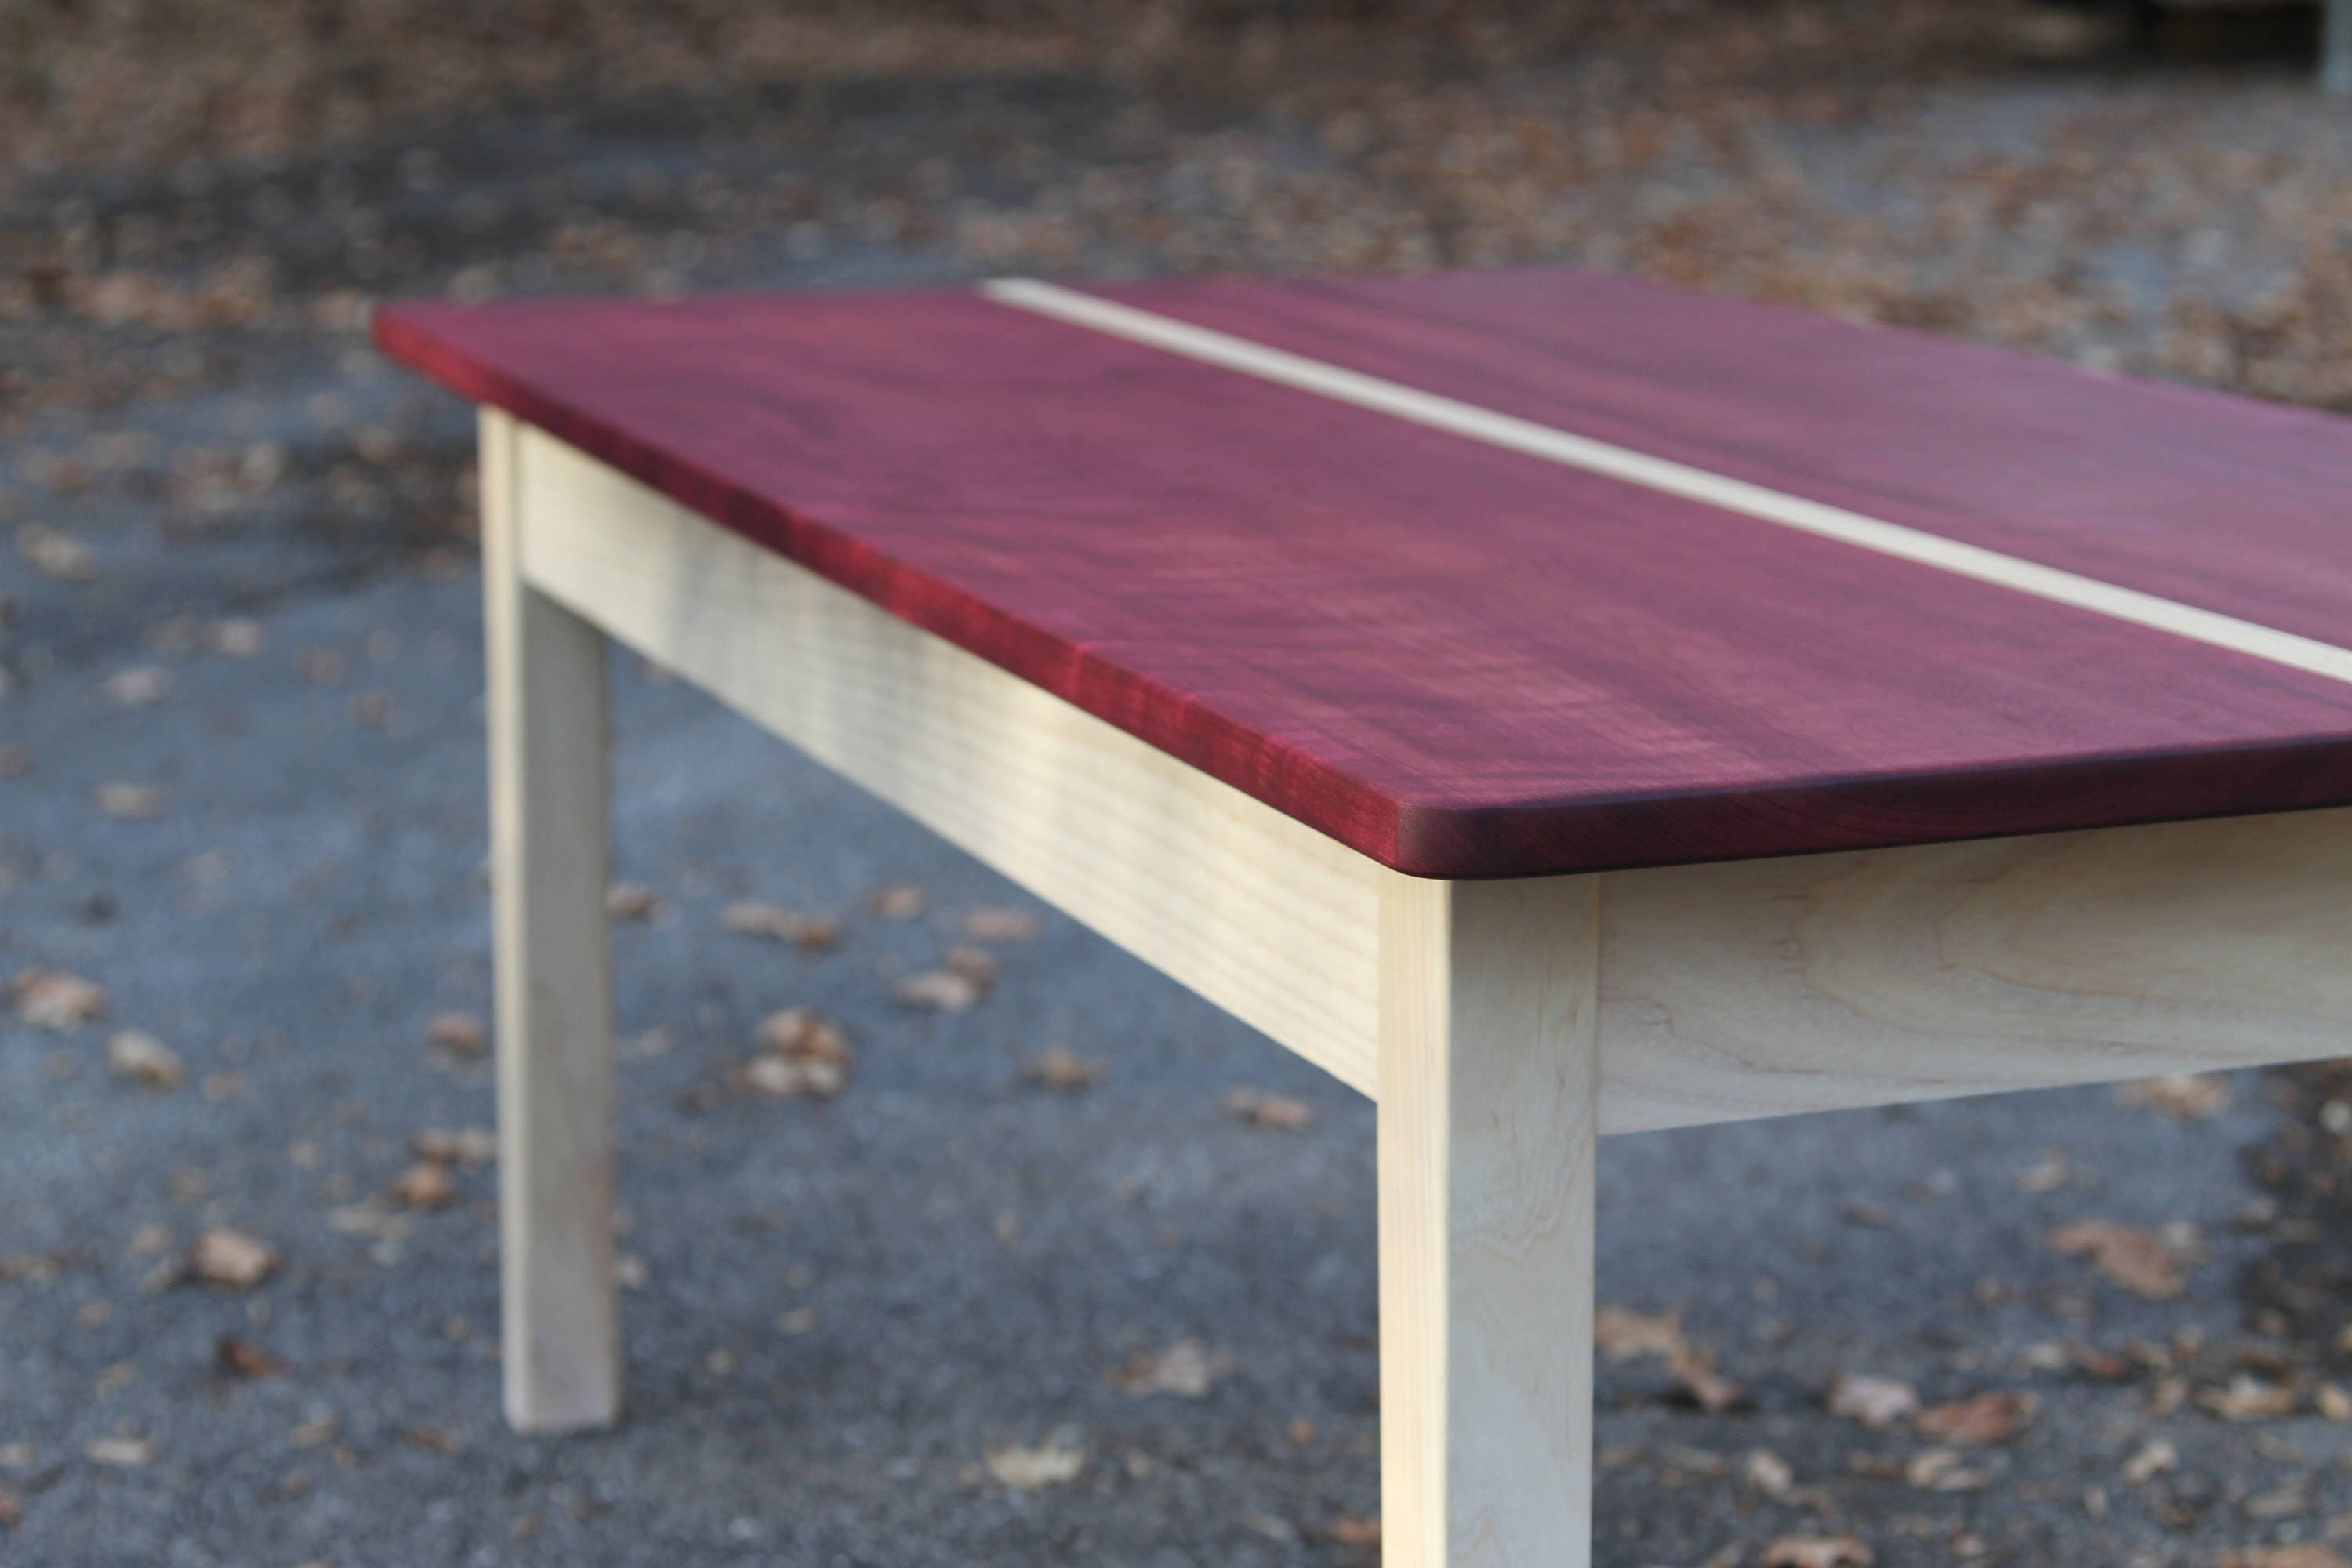 Outstanding Purpleheart Coffee Table White Washed Coffee Table Living Room Table Modern Coffee Table Colorado Made Tapered Legs Magazine Table Interior Design Ideas Gresisoteloinfo